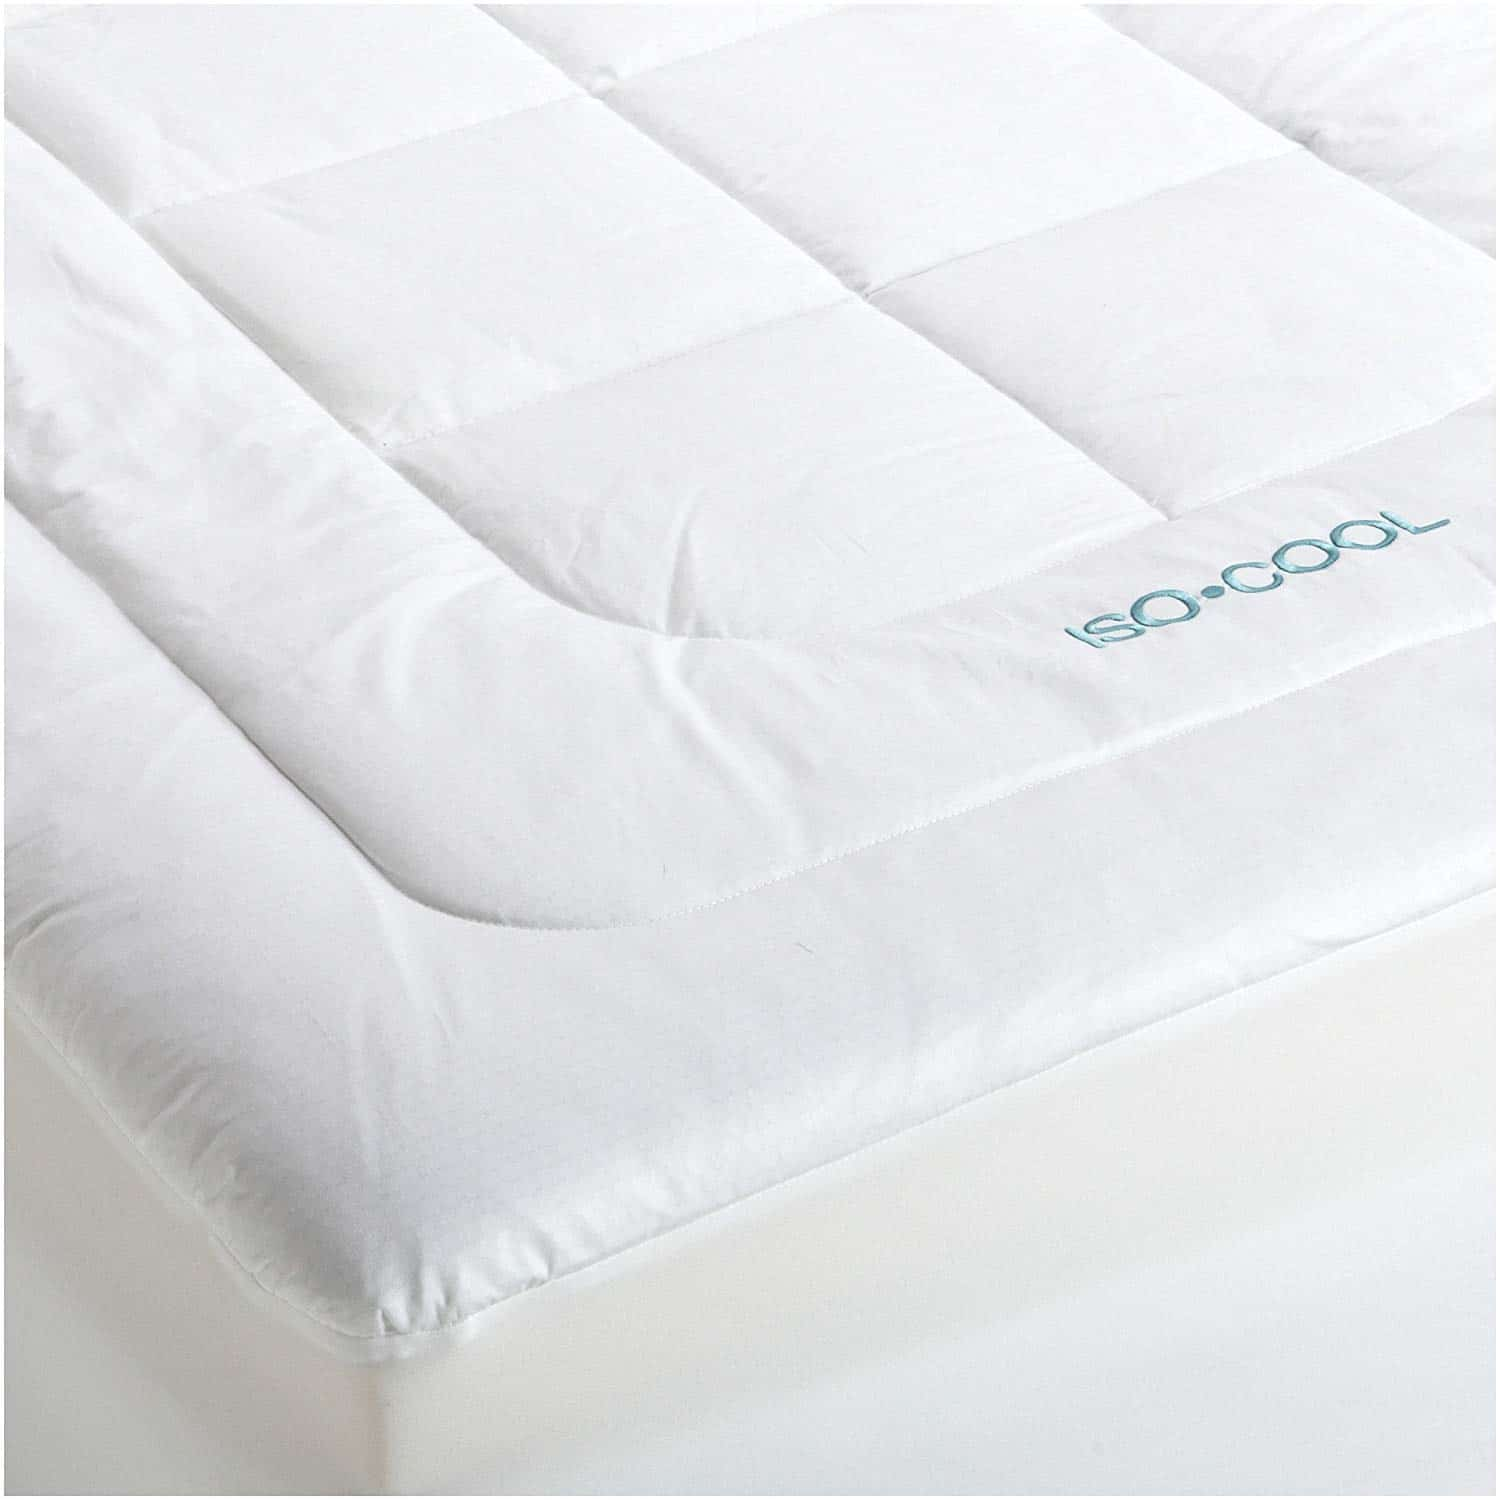 Best Cooling Mattress Pad Topper Reviews 2019 Top 5 Picks